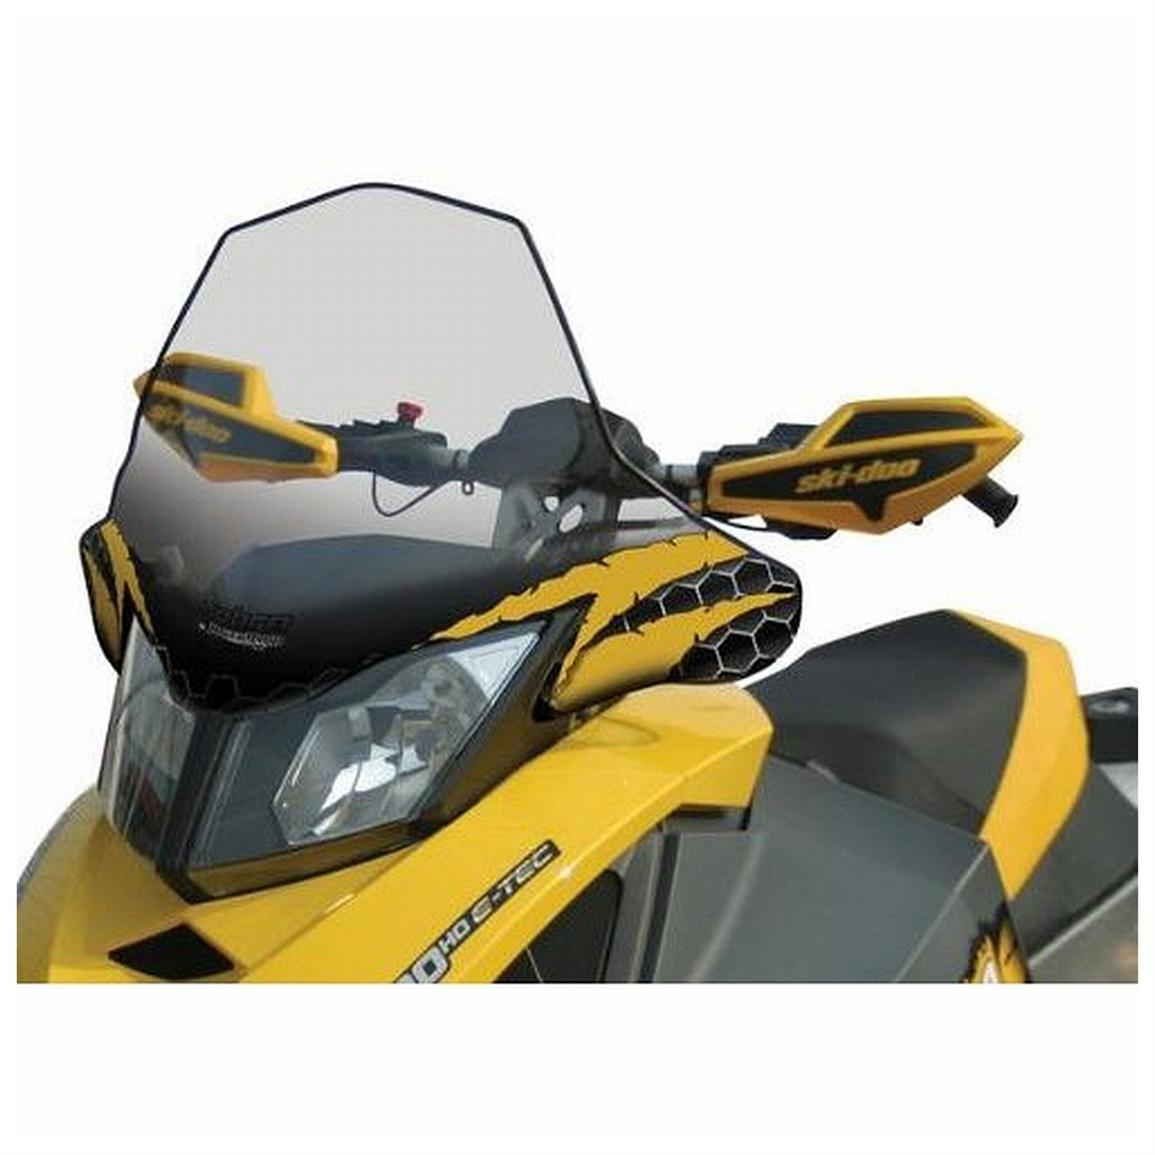 17 1/4 inch PowerMadd® Cobra Snowmobile Windshield for Ski-Doo REV XP Chassis, Clear with Yellow Accent